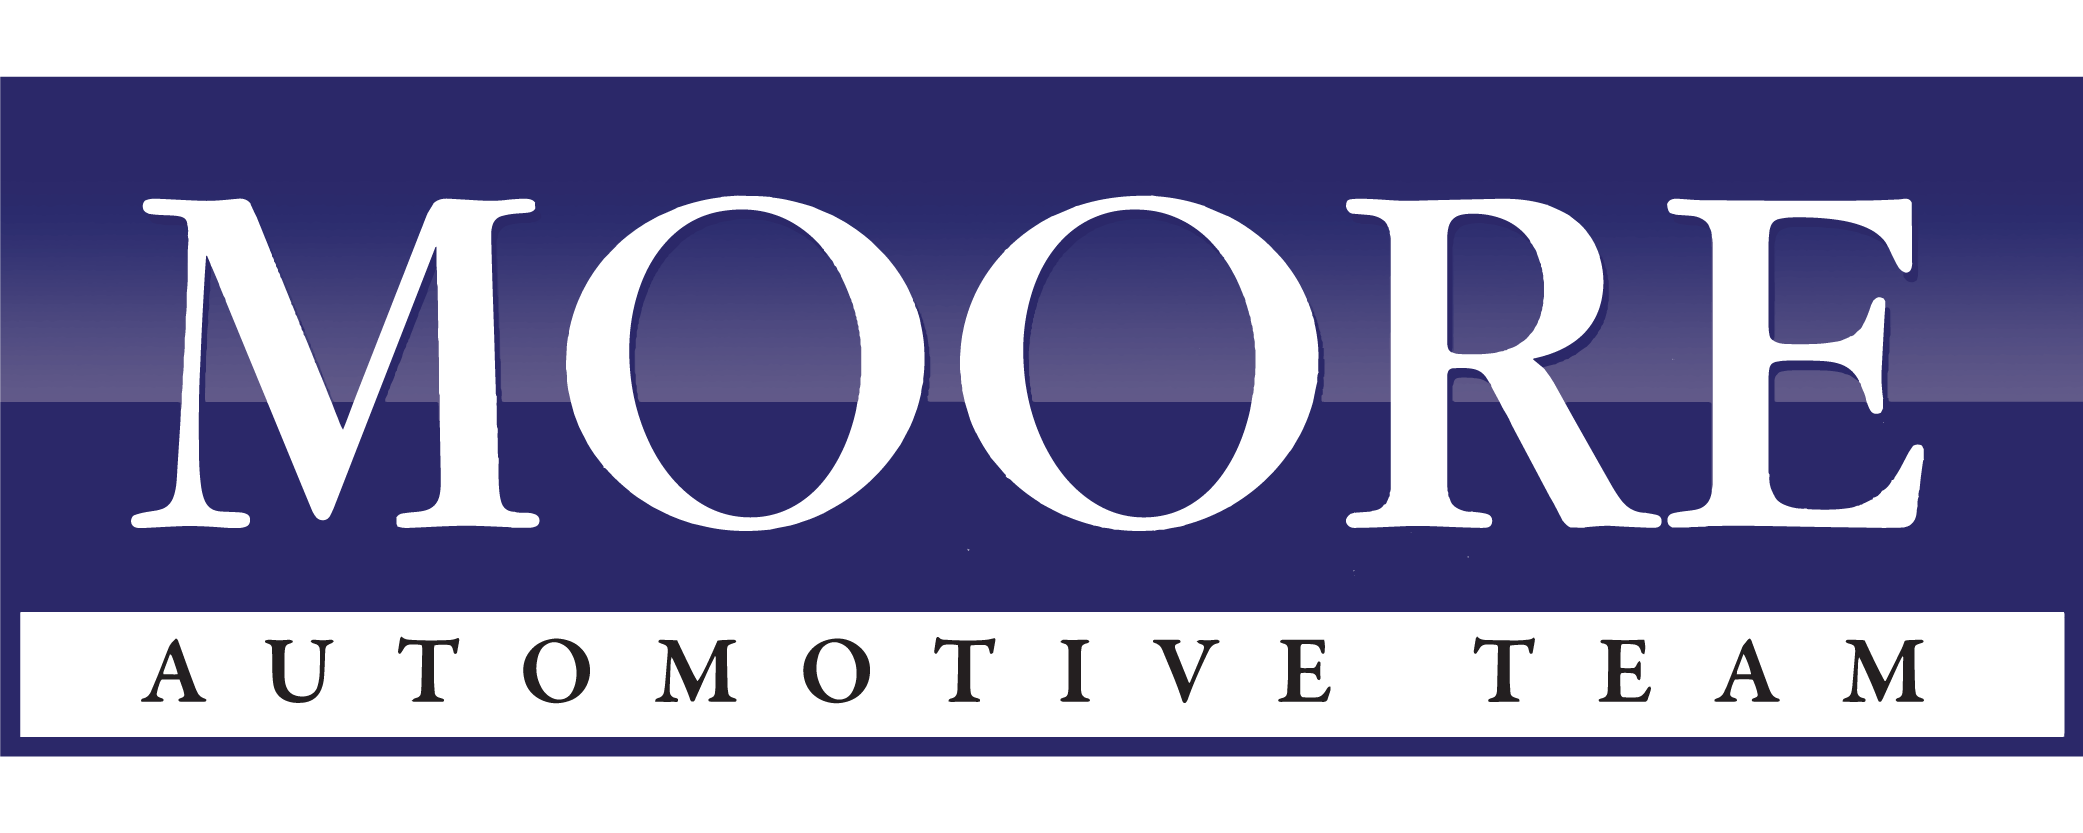 Don Moore Automotive Team